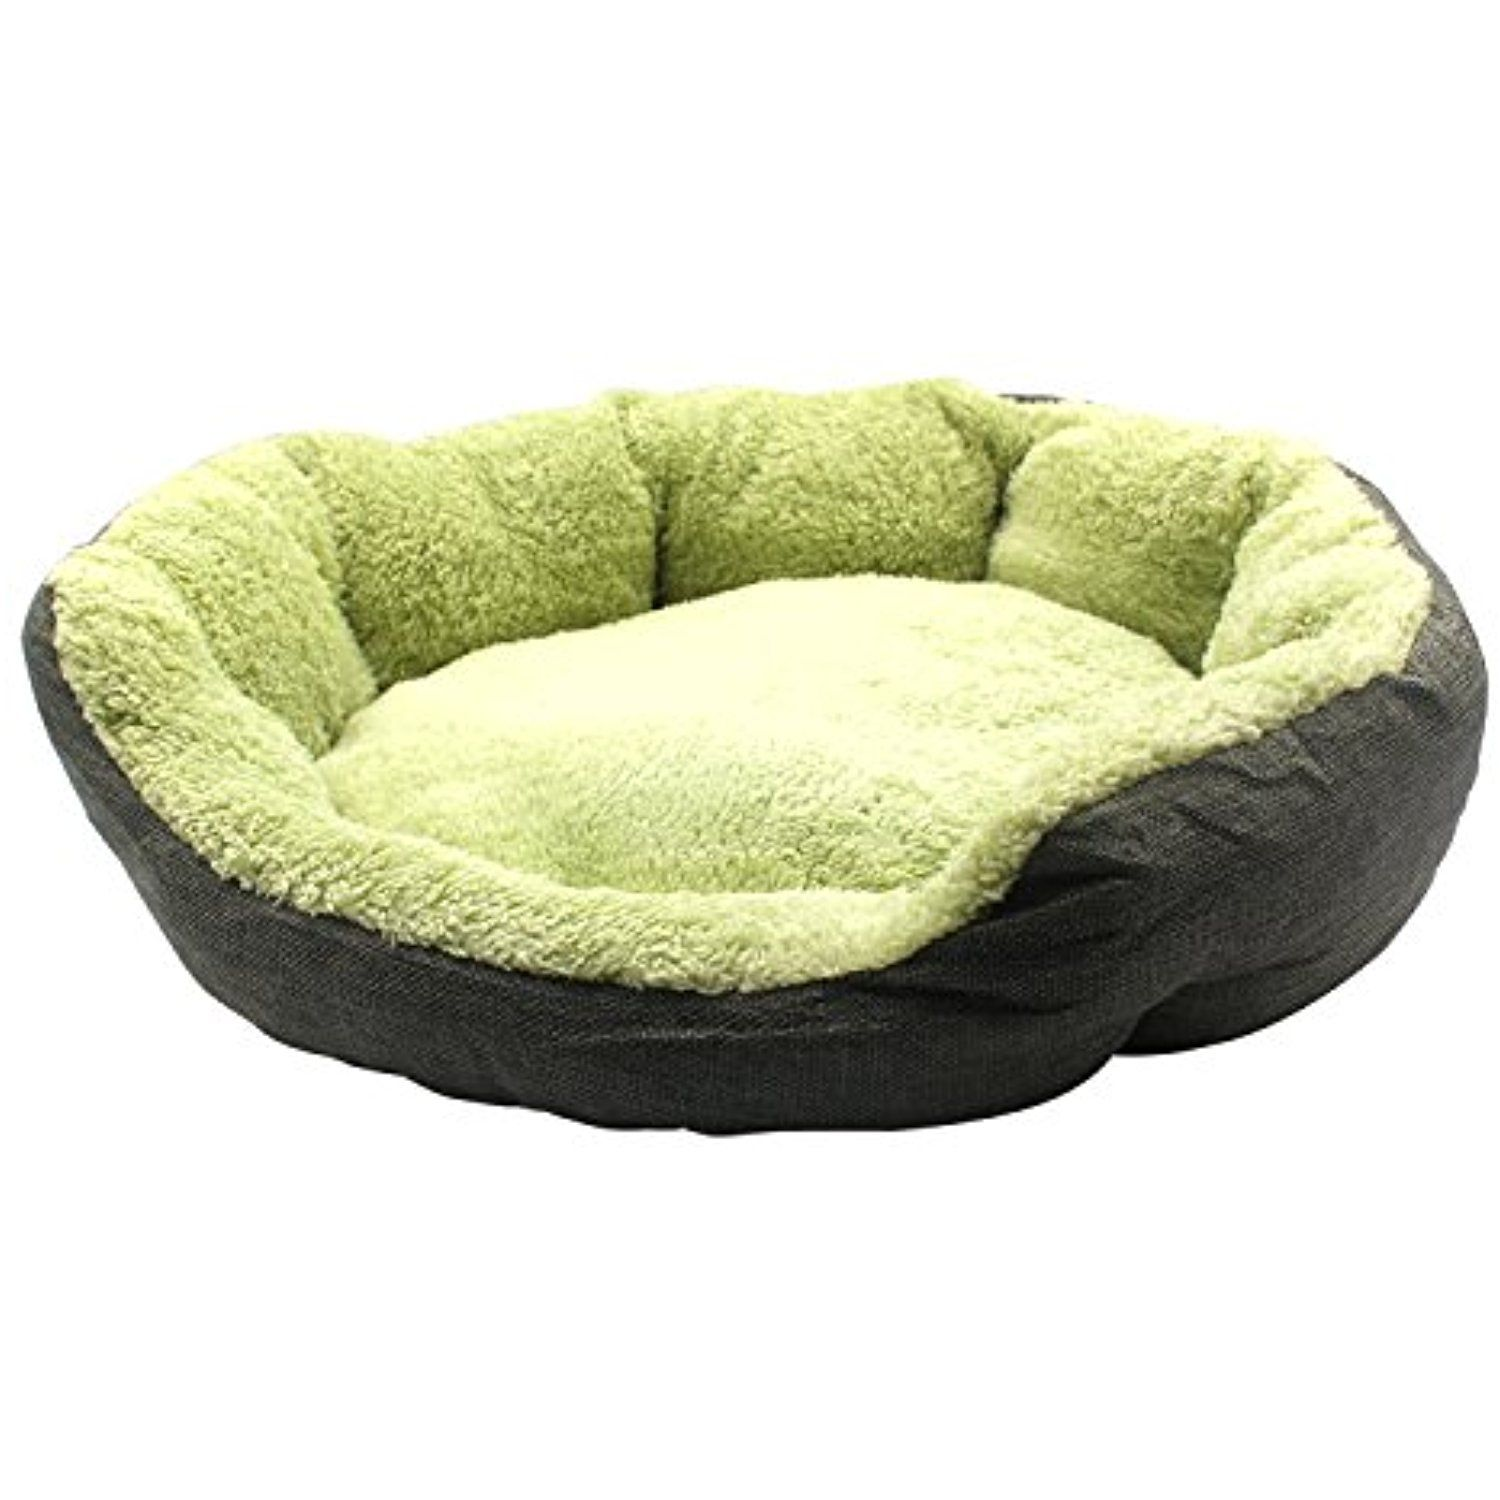 Aiicioo Round Pet Bed Gunny Designed for Dog Cat Bed